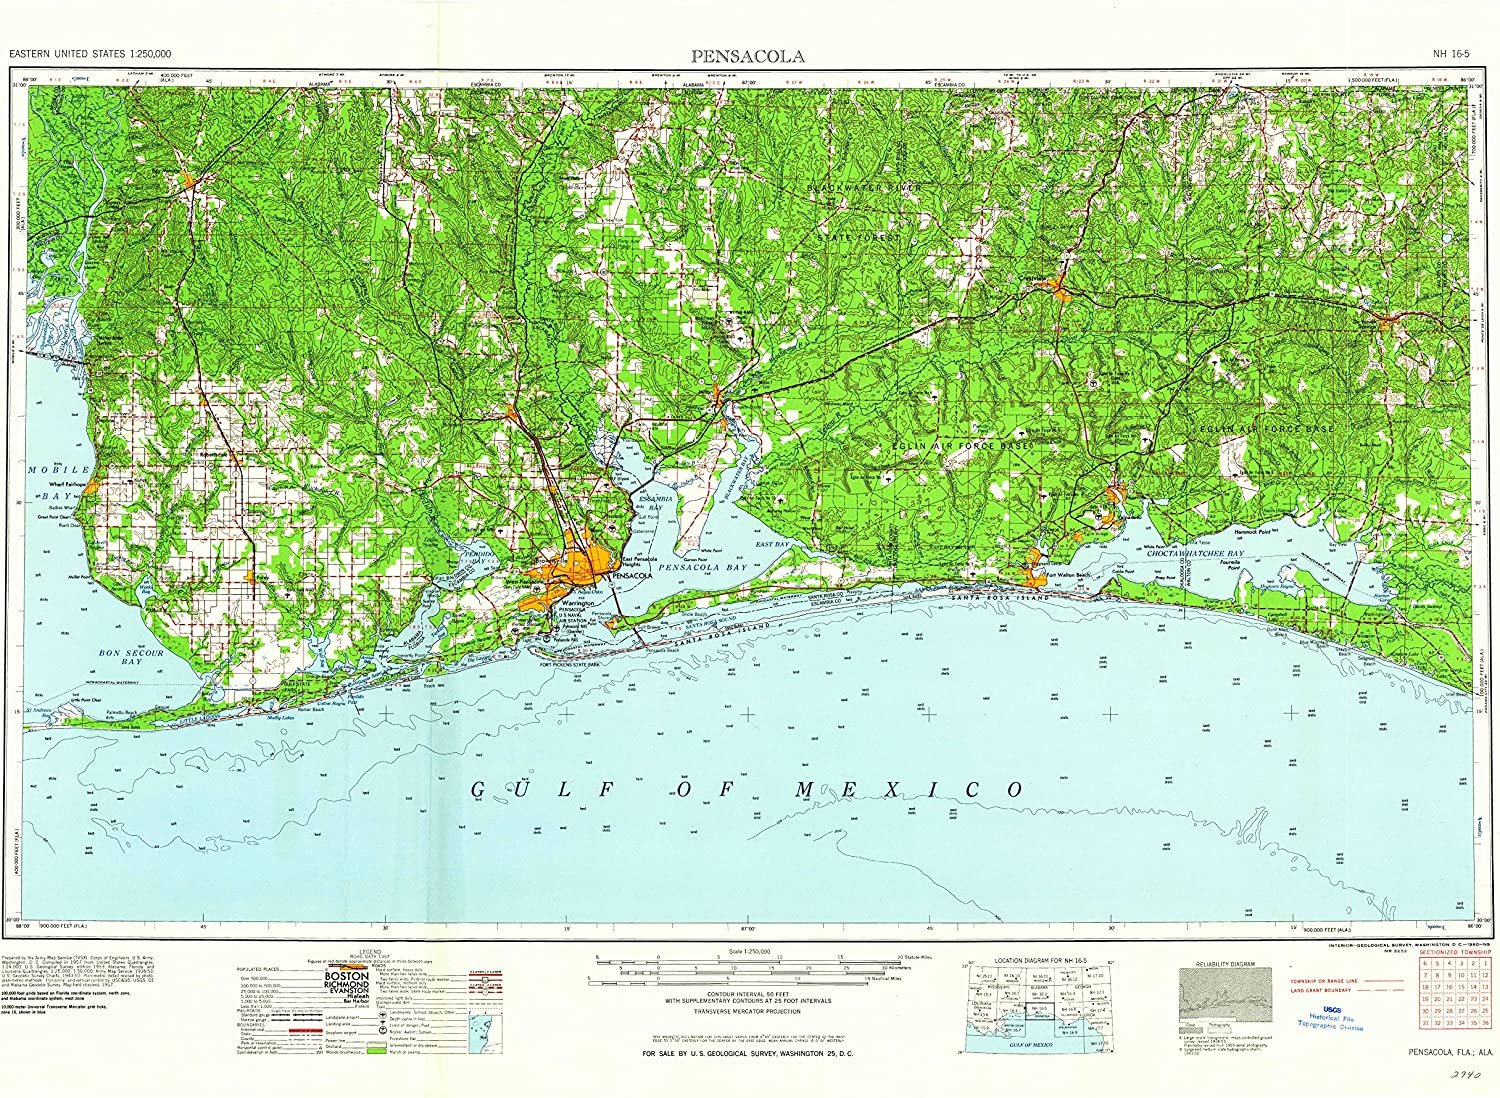 Updated 1960 YellowMaps Pensacola FL topo map Historical 23 x 33 in 1960 1:250000 Scale 1 X 2 Degree